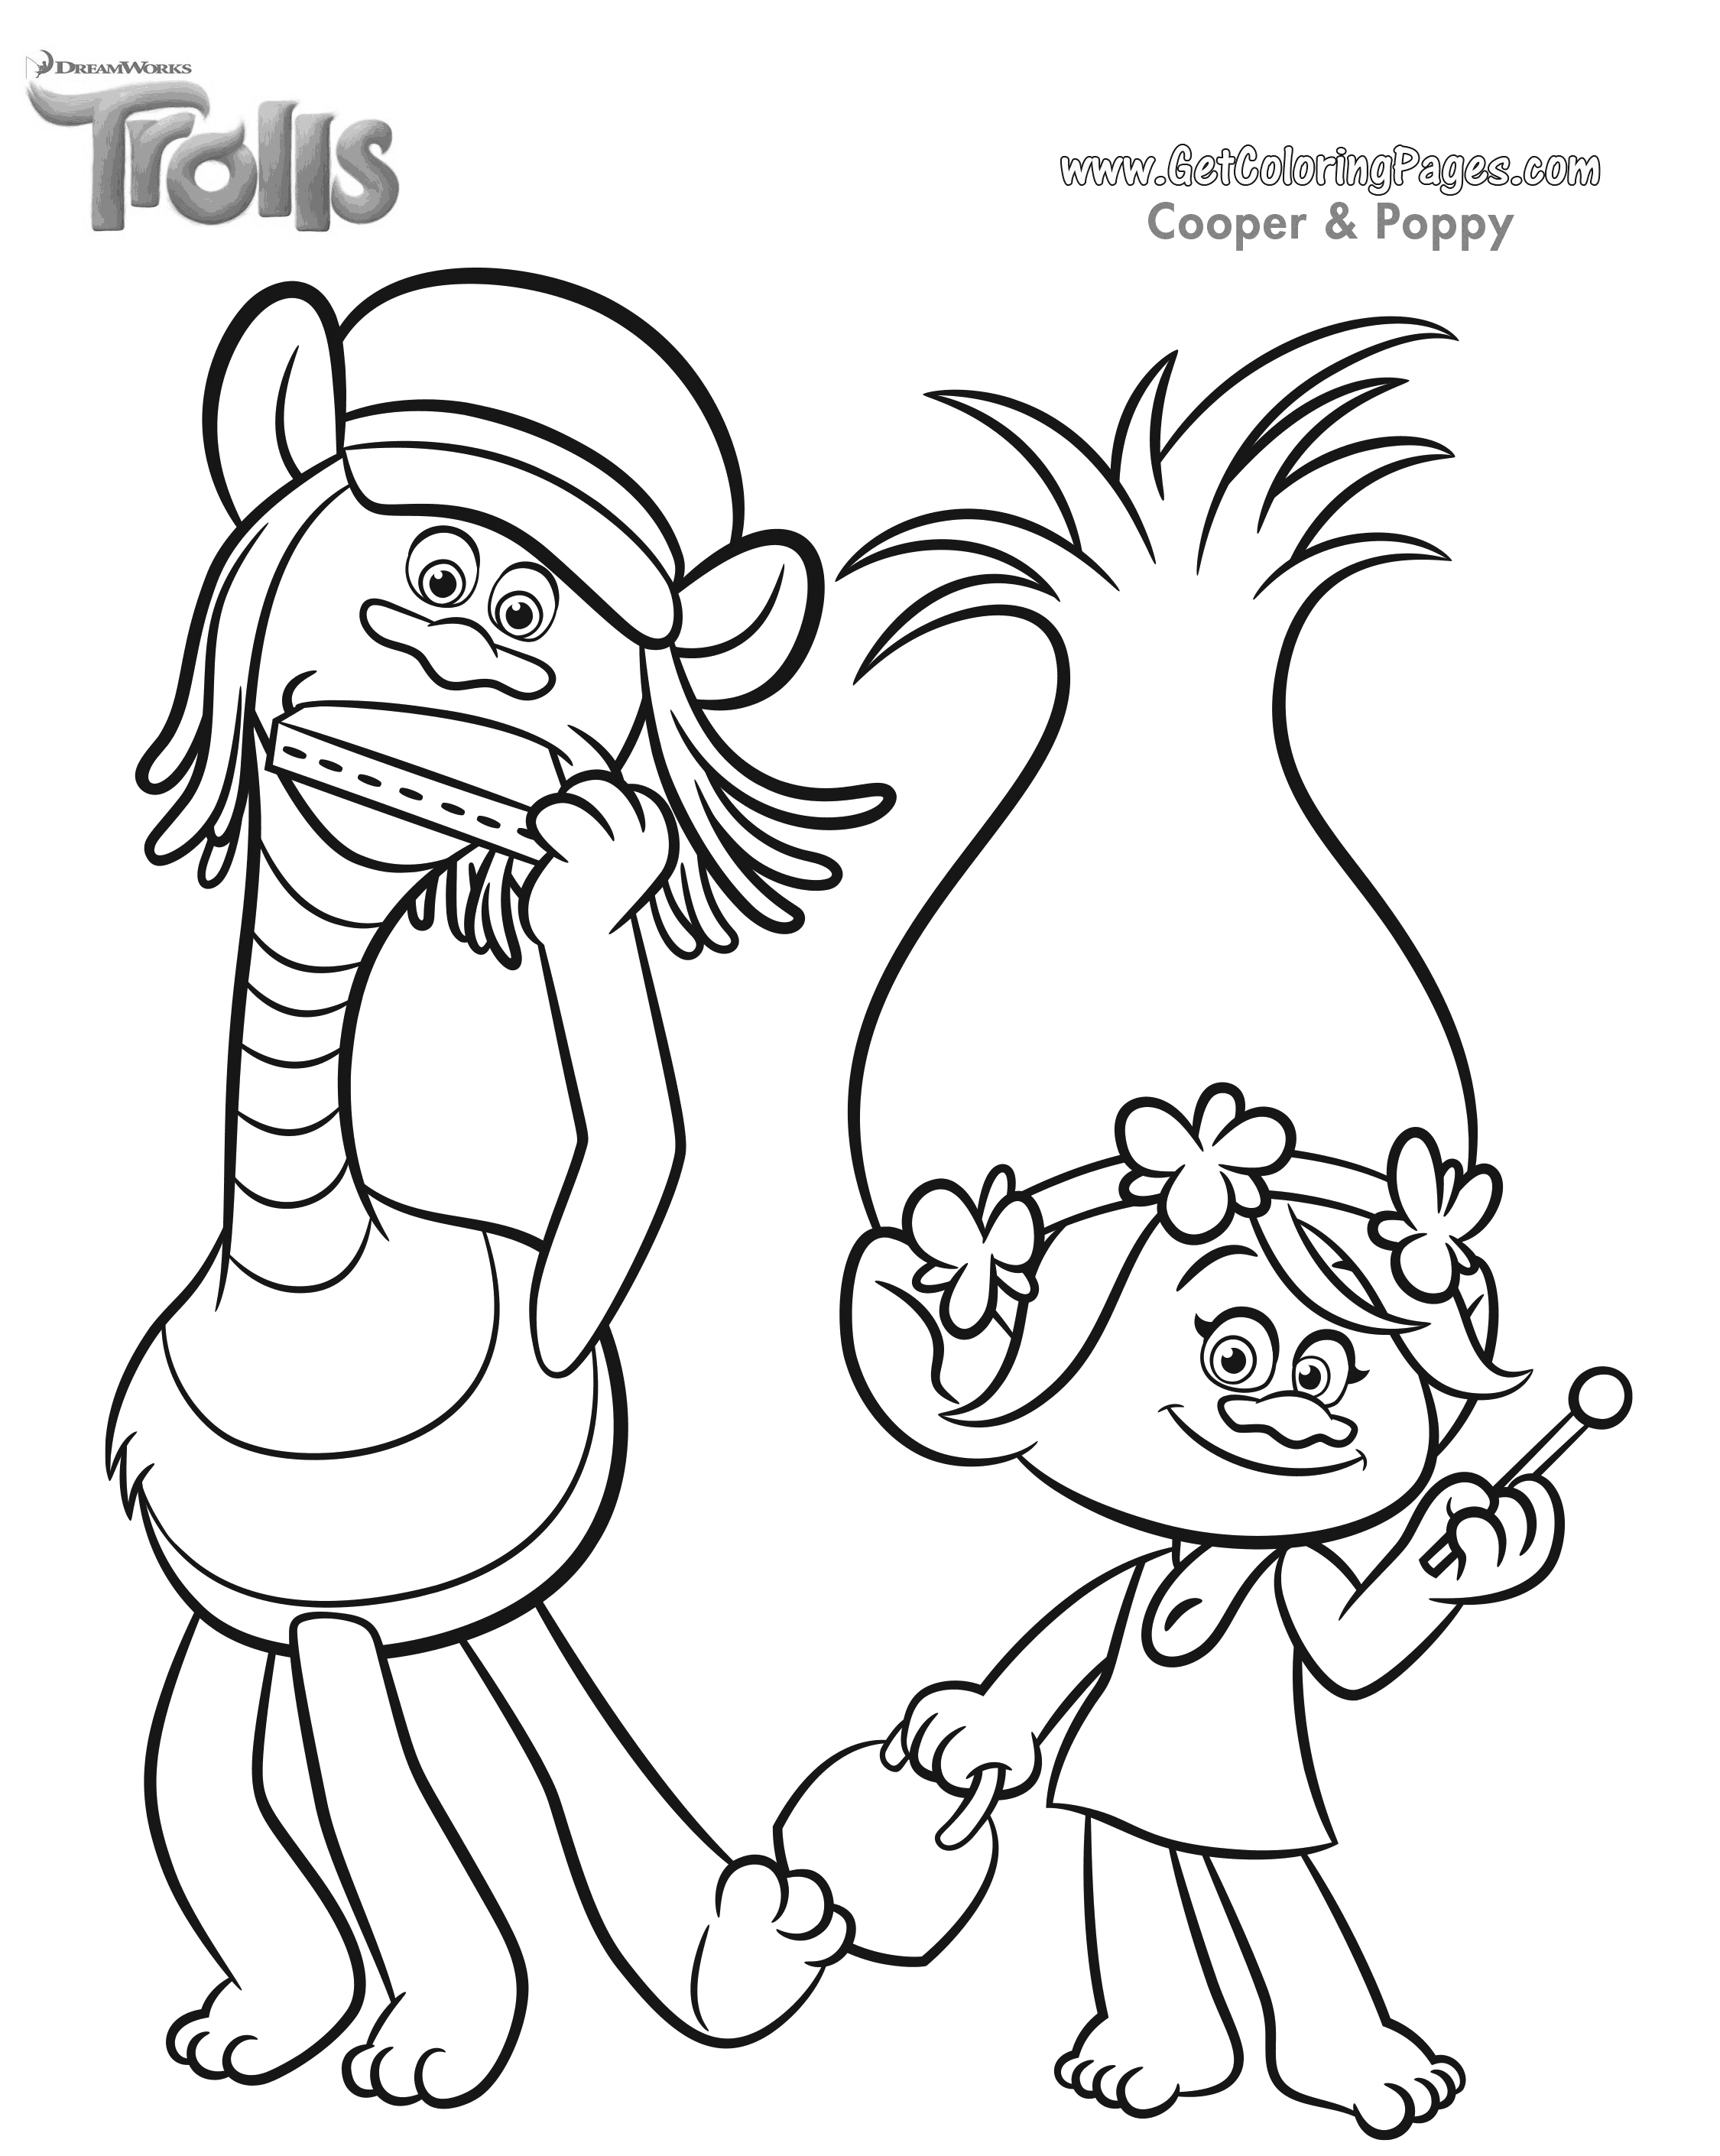 Dreamworks Trolls Coloring Pages - GetColoringPages.com